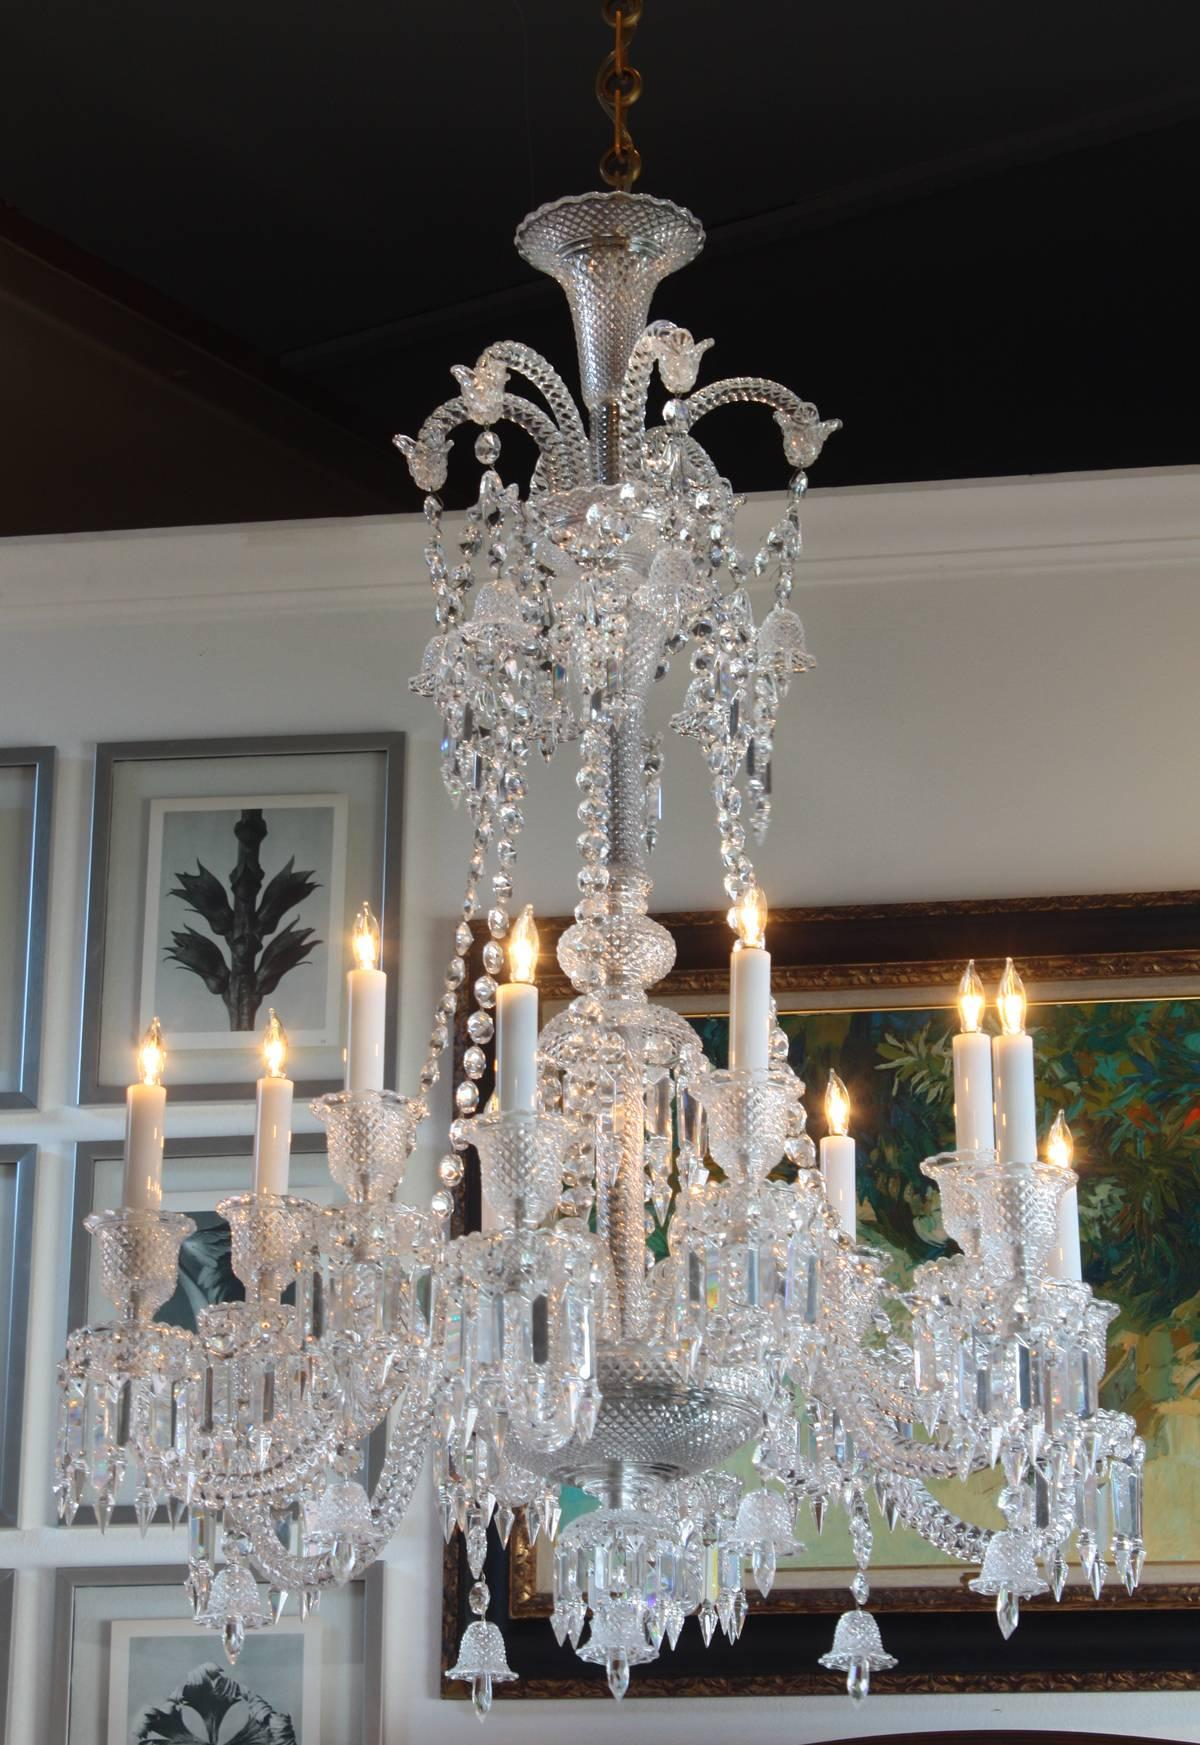 Philippe starck for baccarat zenith long twelve light chandelier philippe starck for baccarat zenith long twelve light chandelier at 1stdibs arubaitofo Gallery